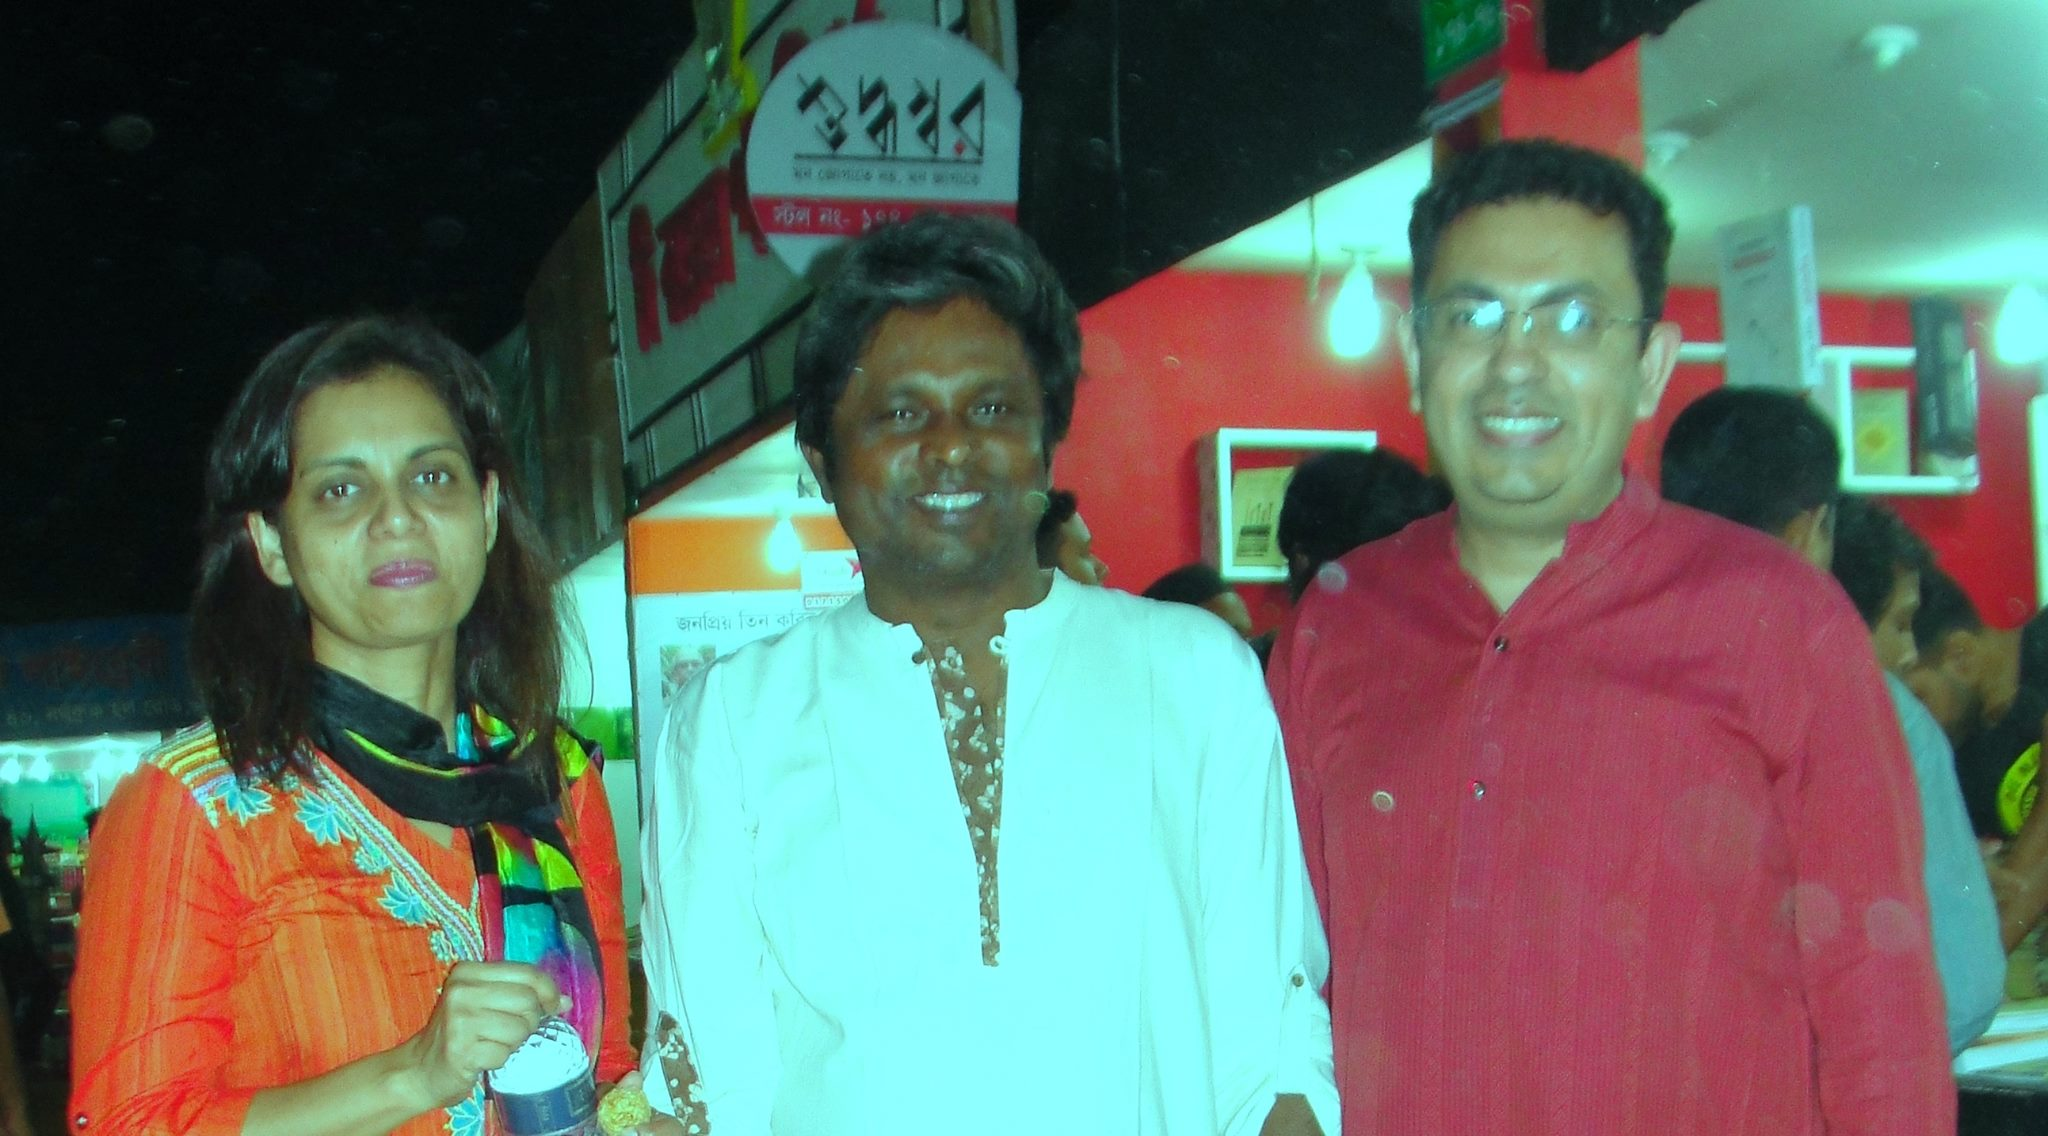 Ahmed Rashid Tutul (centre) at his publishing house book stall at the Dhaka International Book Fair, 26 February 2015. This is the night Avijit Roy (right) was murdered, and Roy's wife Rafida Ahmed (left) was seriously injured.